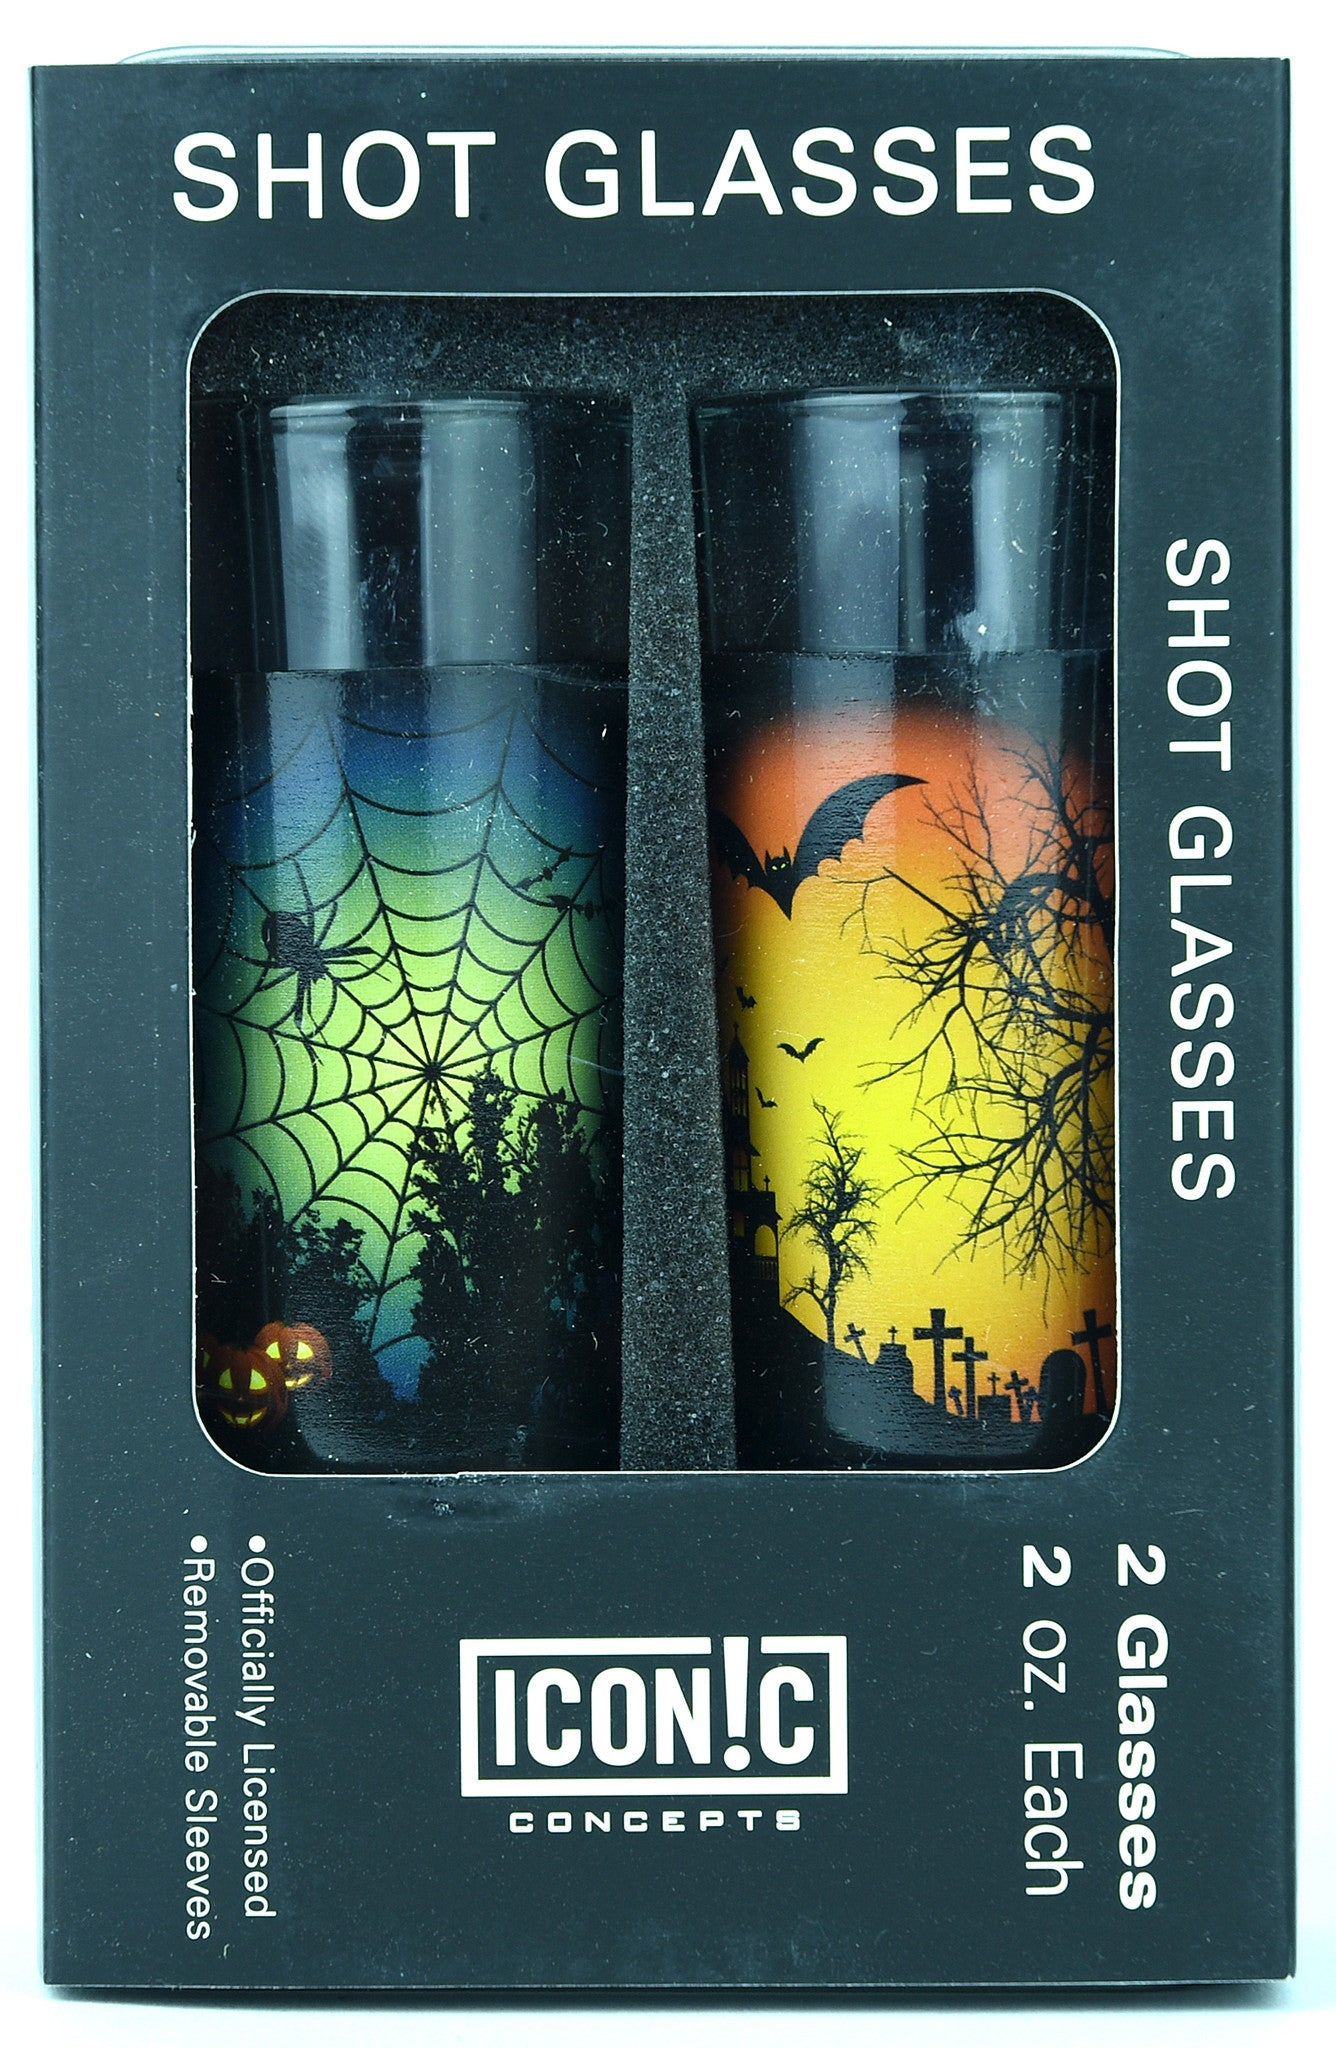 Halloween Shot Glasses 2Pack With Aluminum Sleeves - Orange Moon And Spider